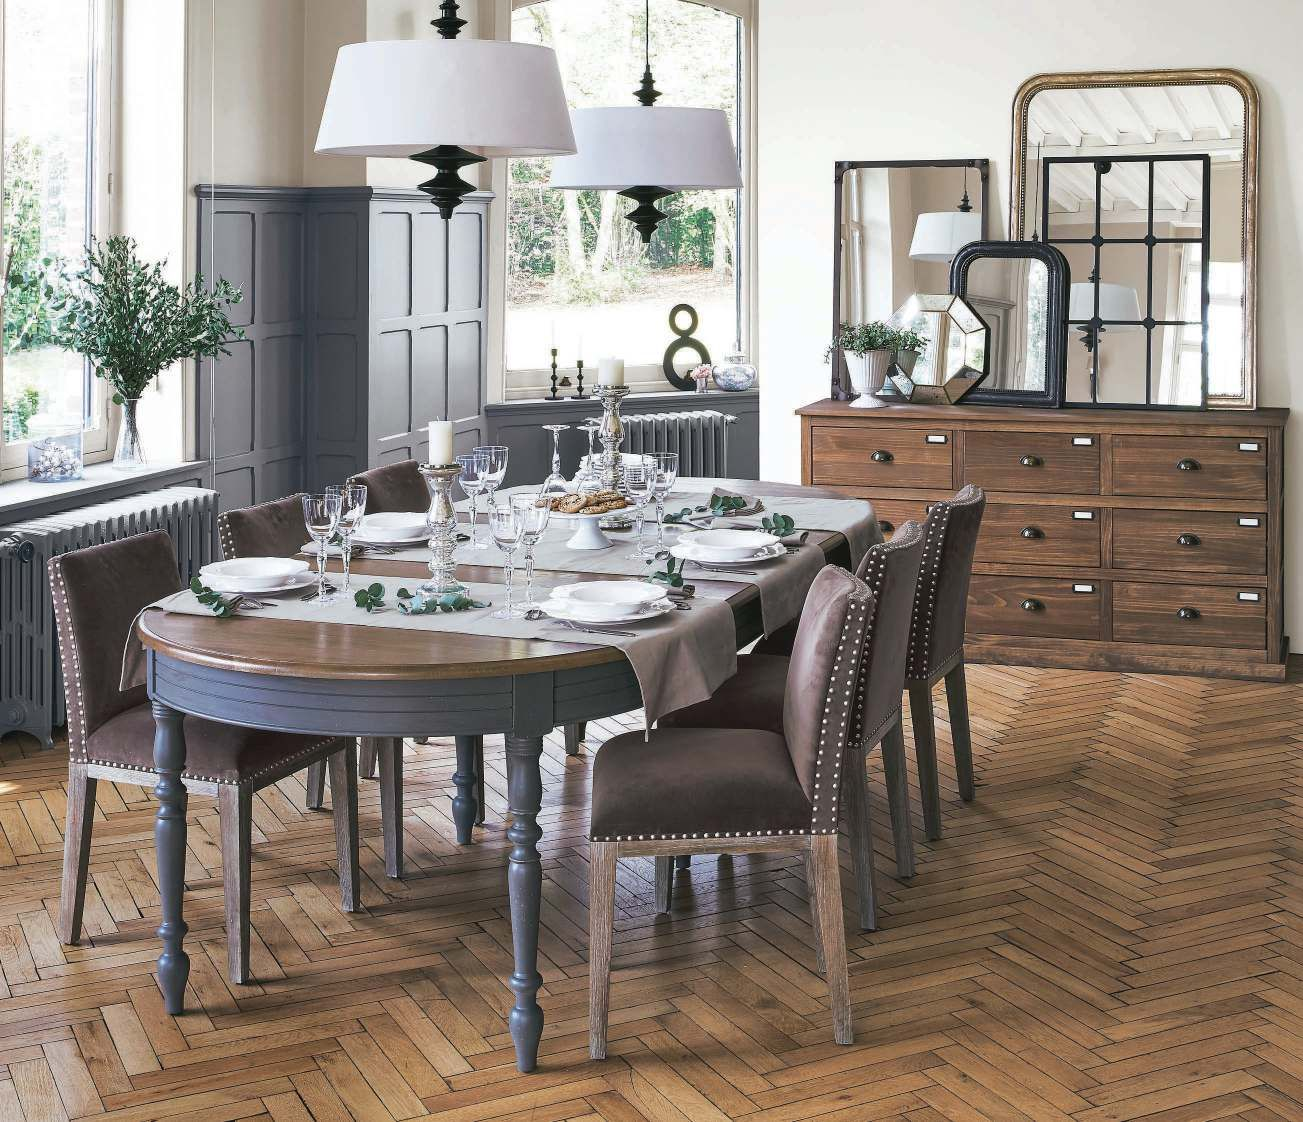 collection ah 2017 2018 catalogue la redoute int rieurs simple heritage table ch ne anthracite. Black Bedroom Furniture Sets. Home Design Ideas